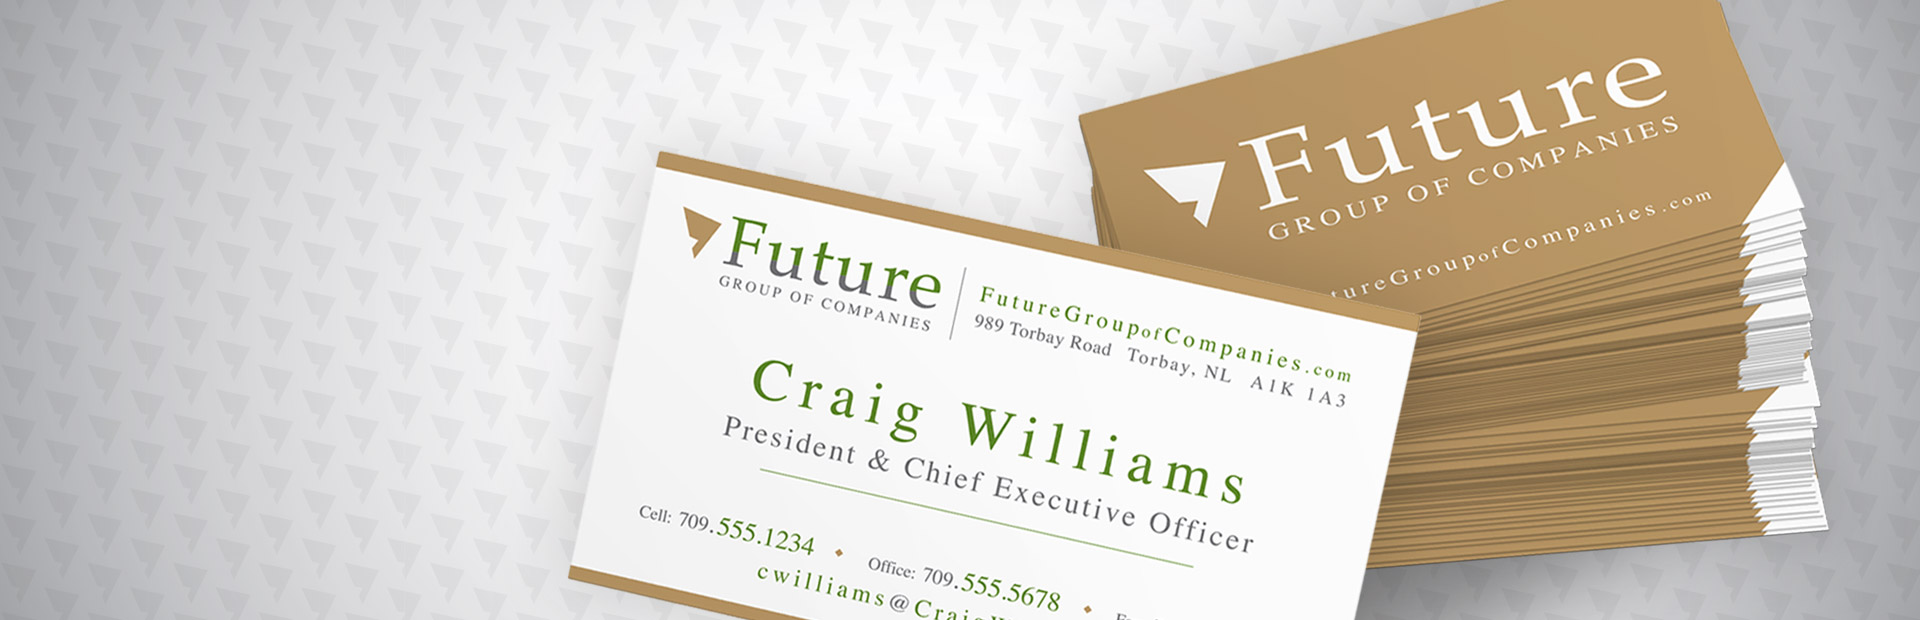 Business cards for future group of companies dc design house business cards for future group of companies colourmoves